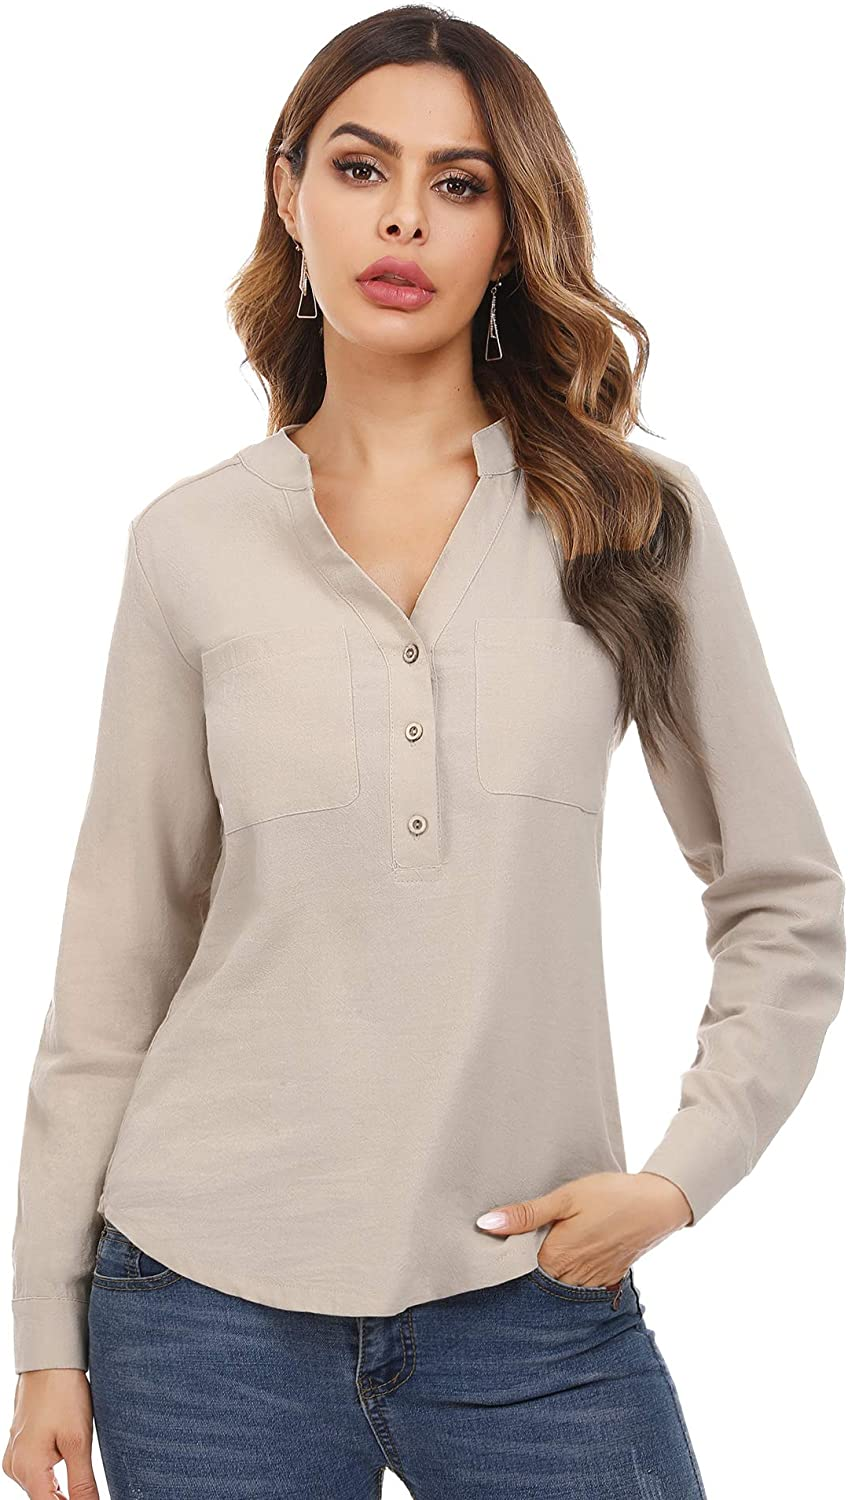 Irevial Women's Notch Neck Long Sleeve Henley Shirts Button Up Tunic Blouses with Pocket